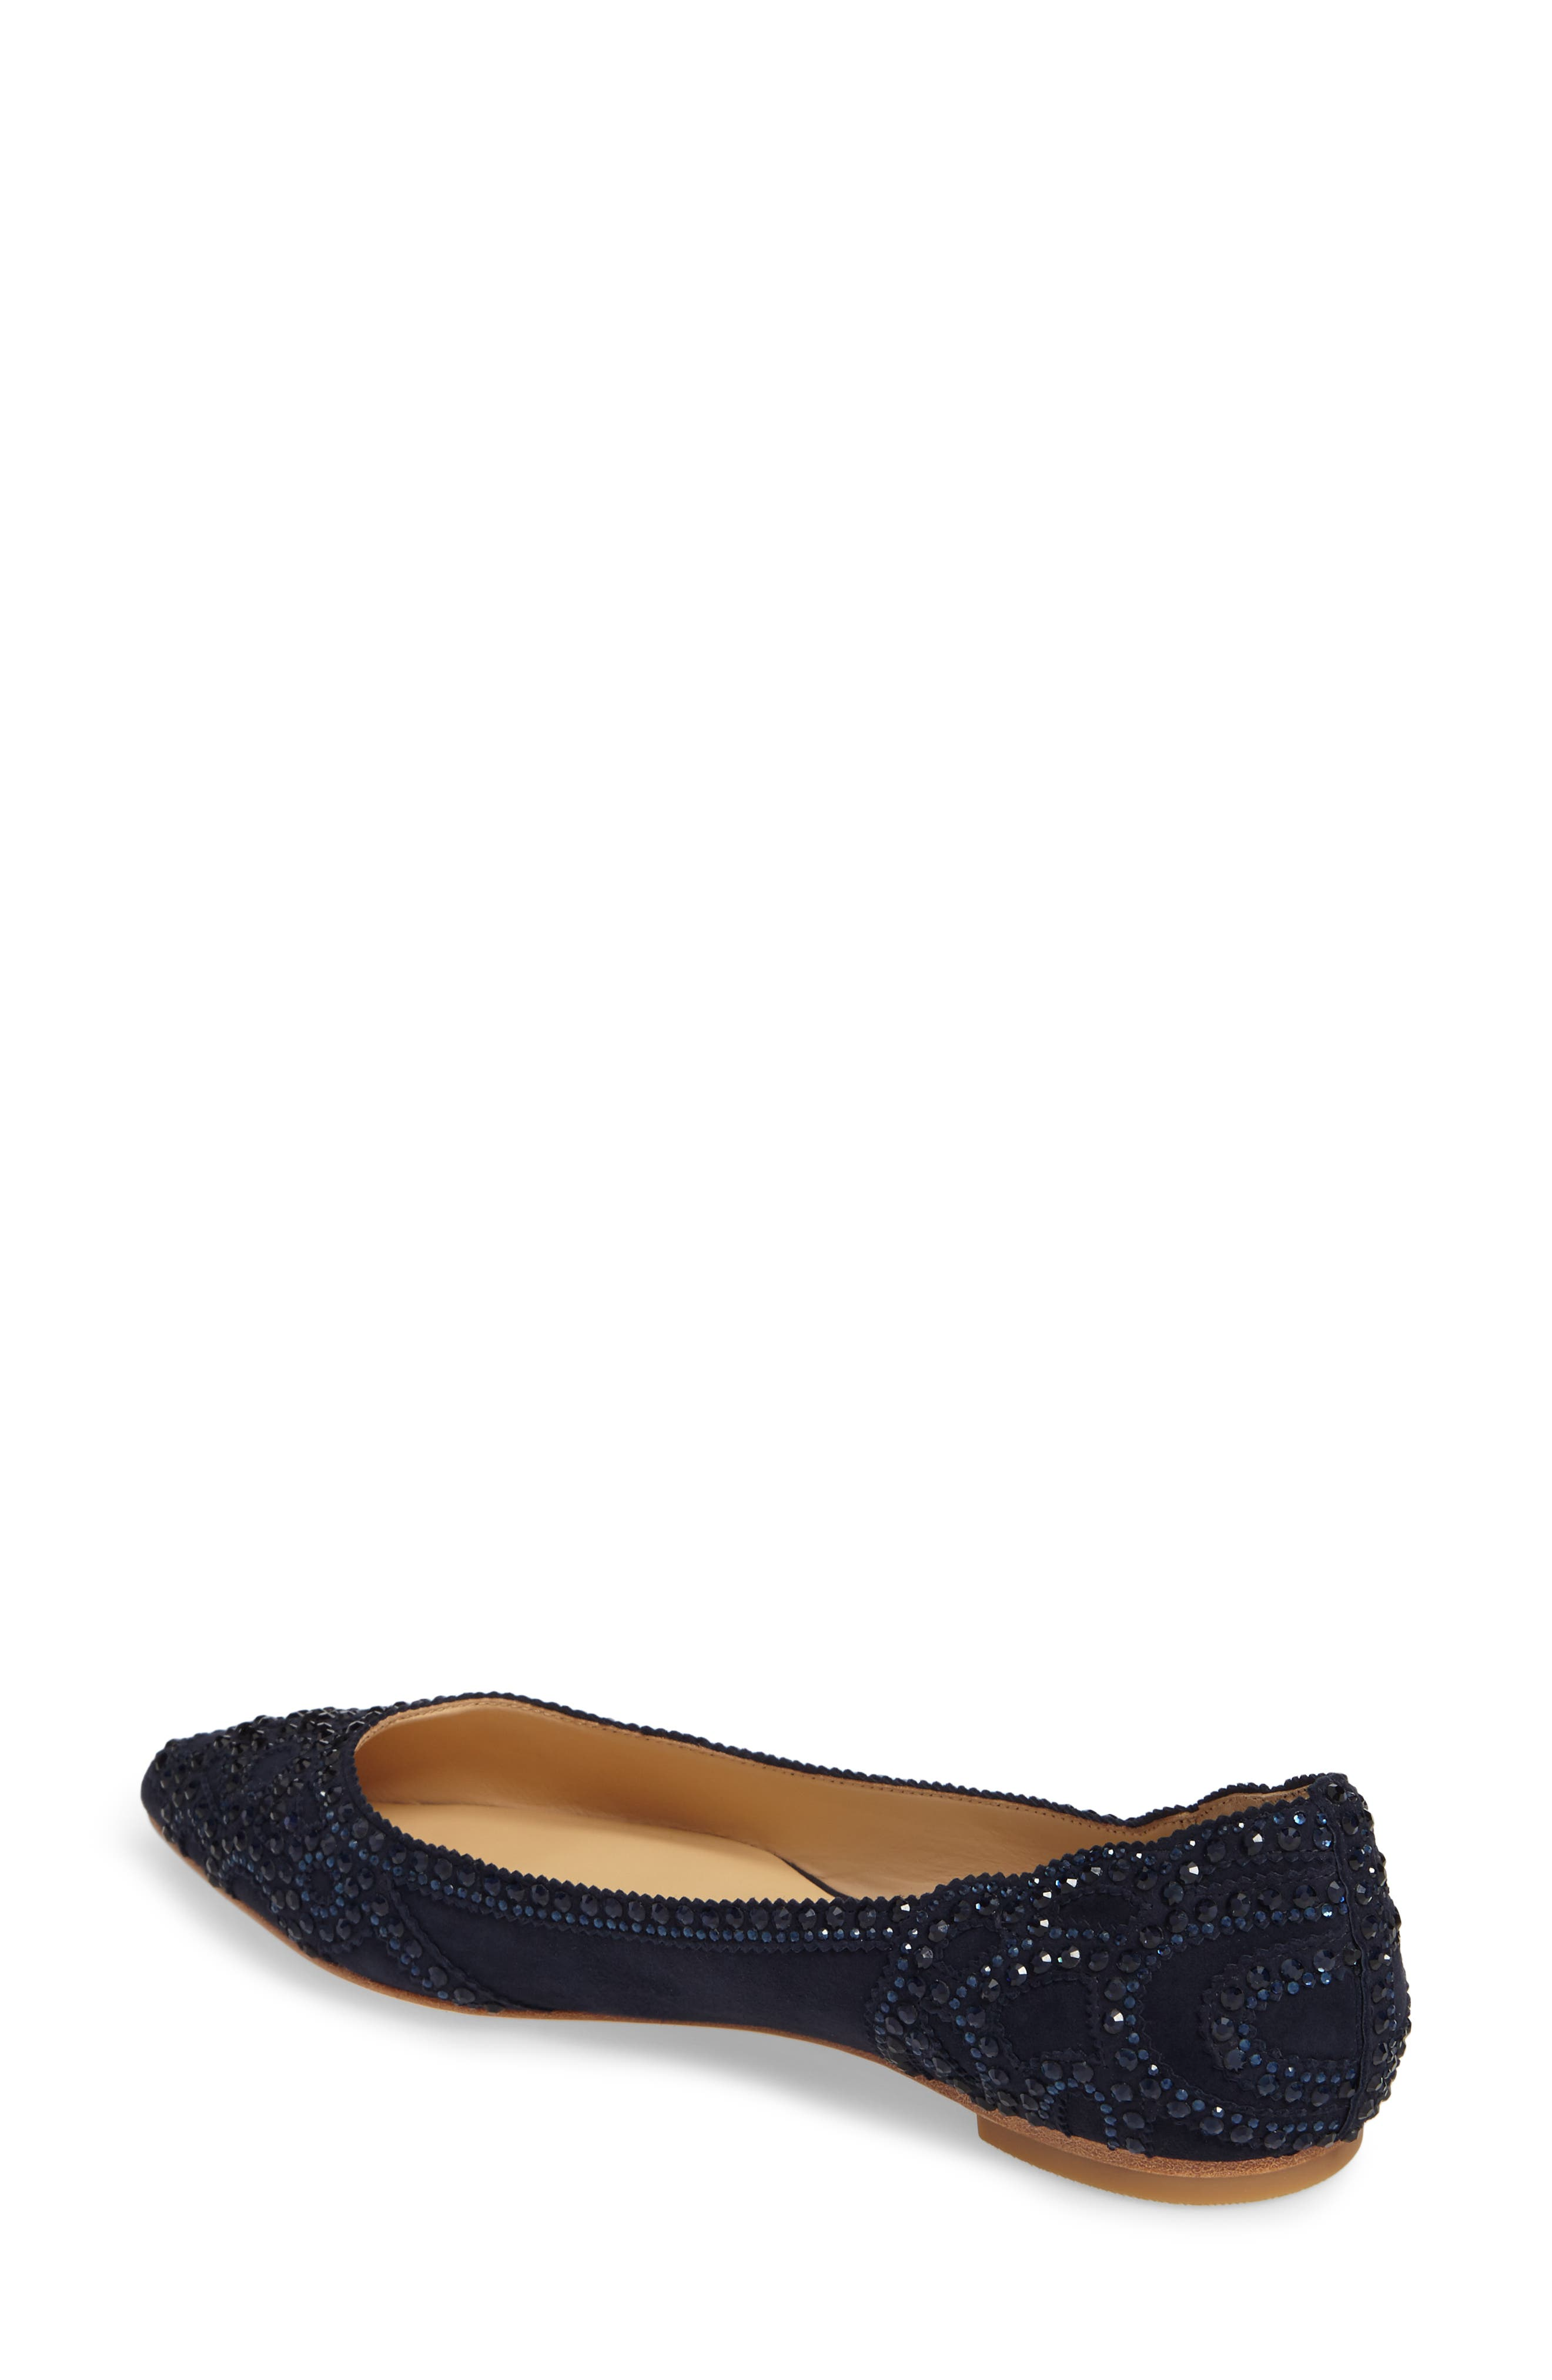 Gigi Crystal Pointy Toe Flat,                             Alternate thumbnail 2, color,                             Midnight Suede